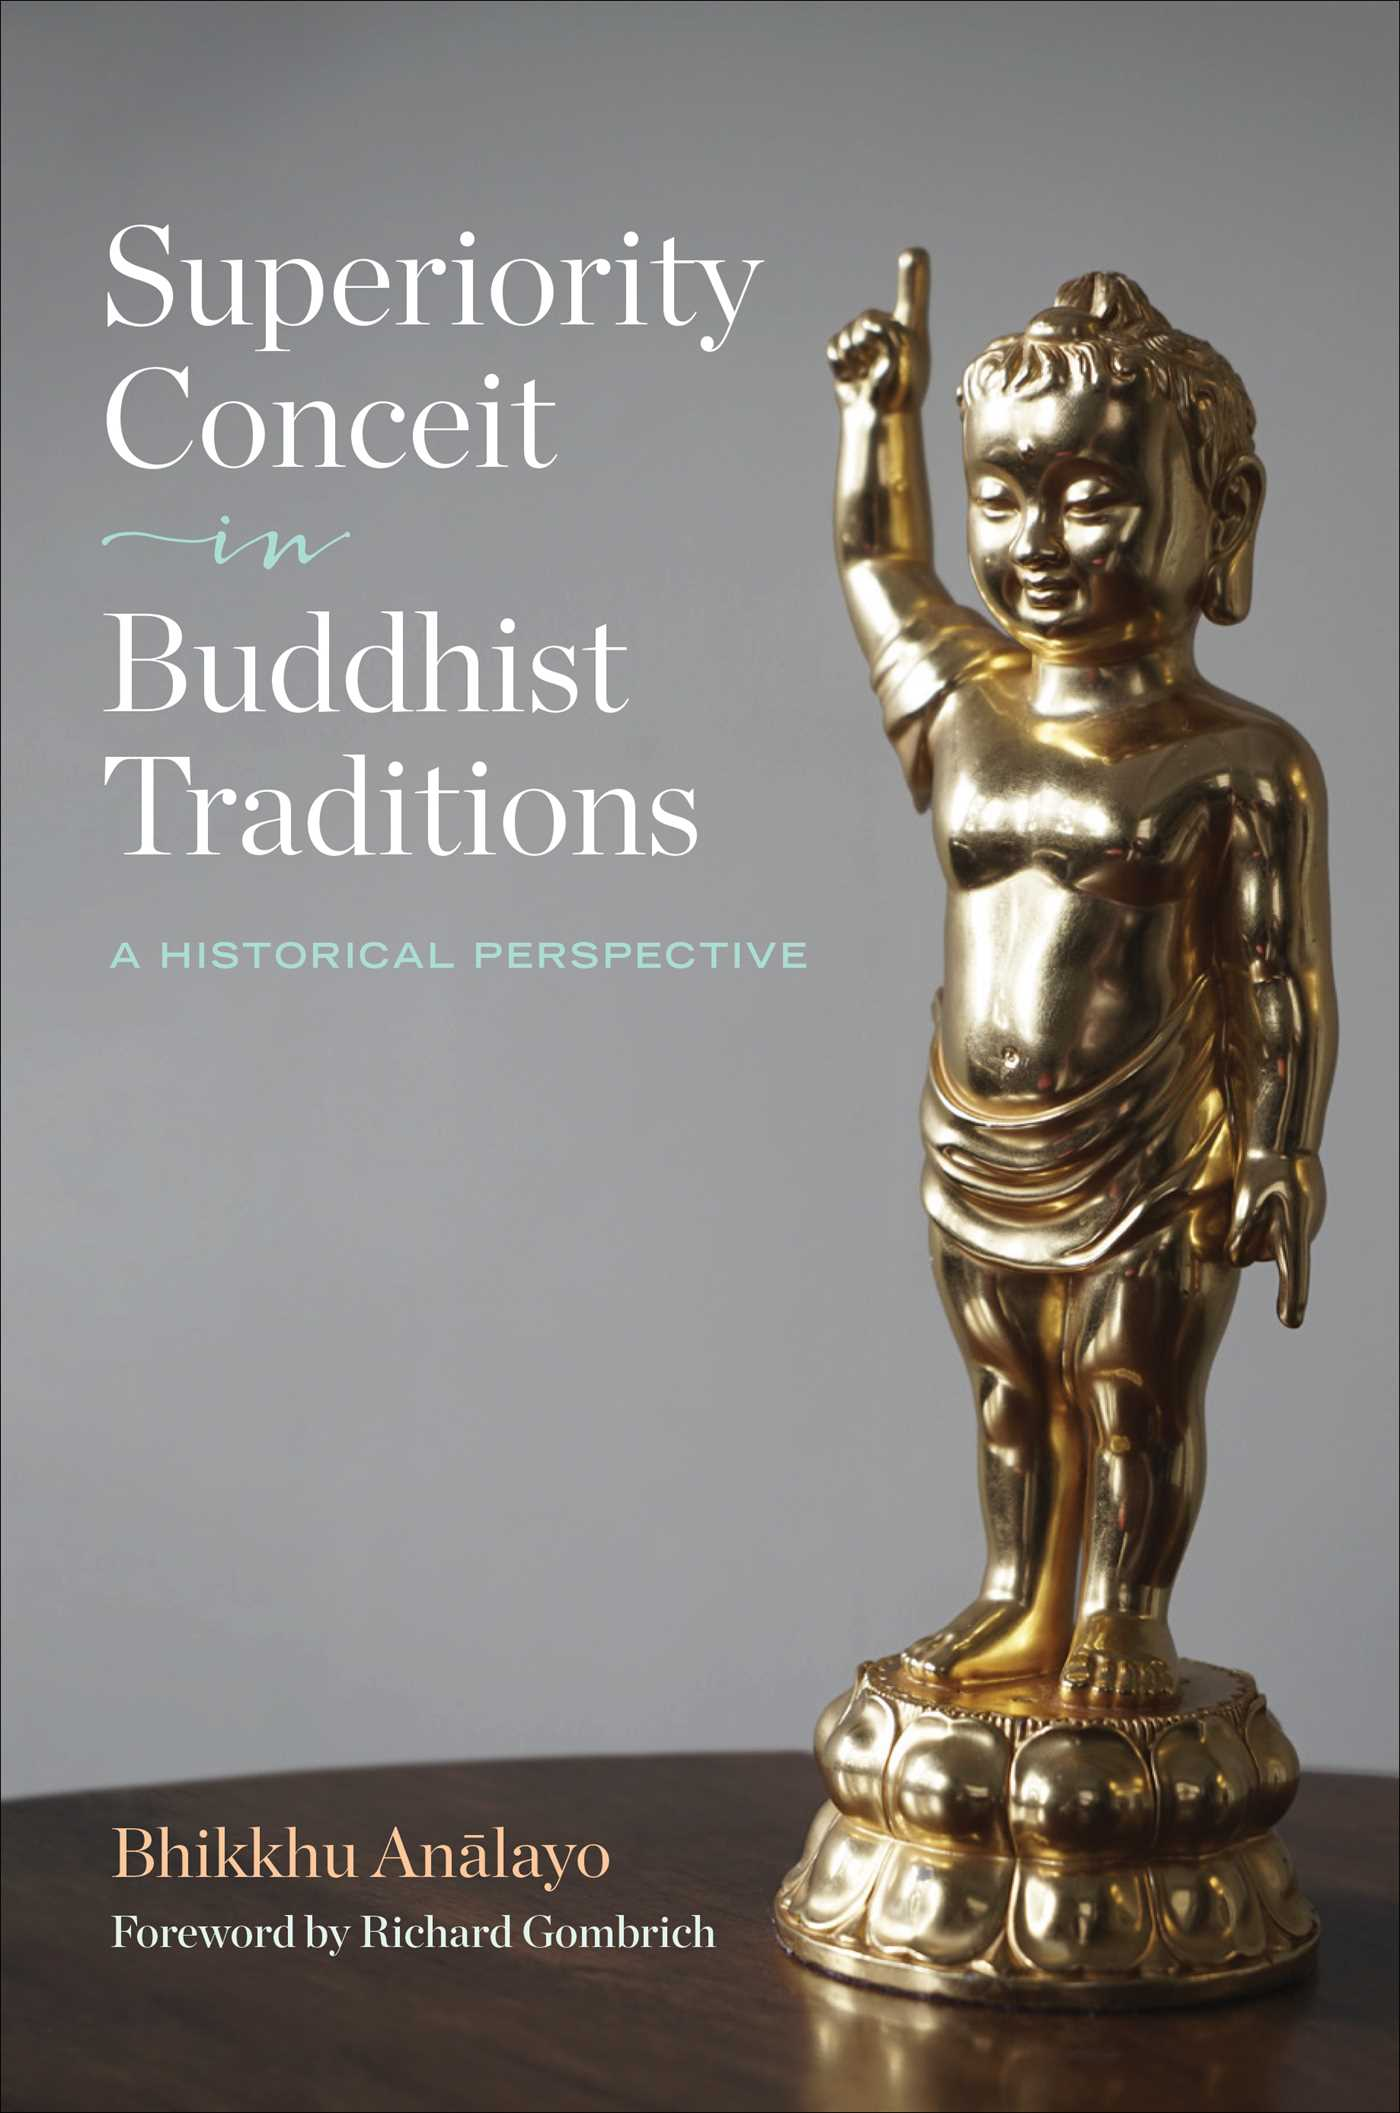 Superiority Conceit in Buddhist Traditions | Book by Bhikkhu Analayo,  Richard Gombrich | Official Publisher Page | Simon & Schuster